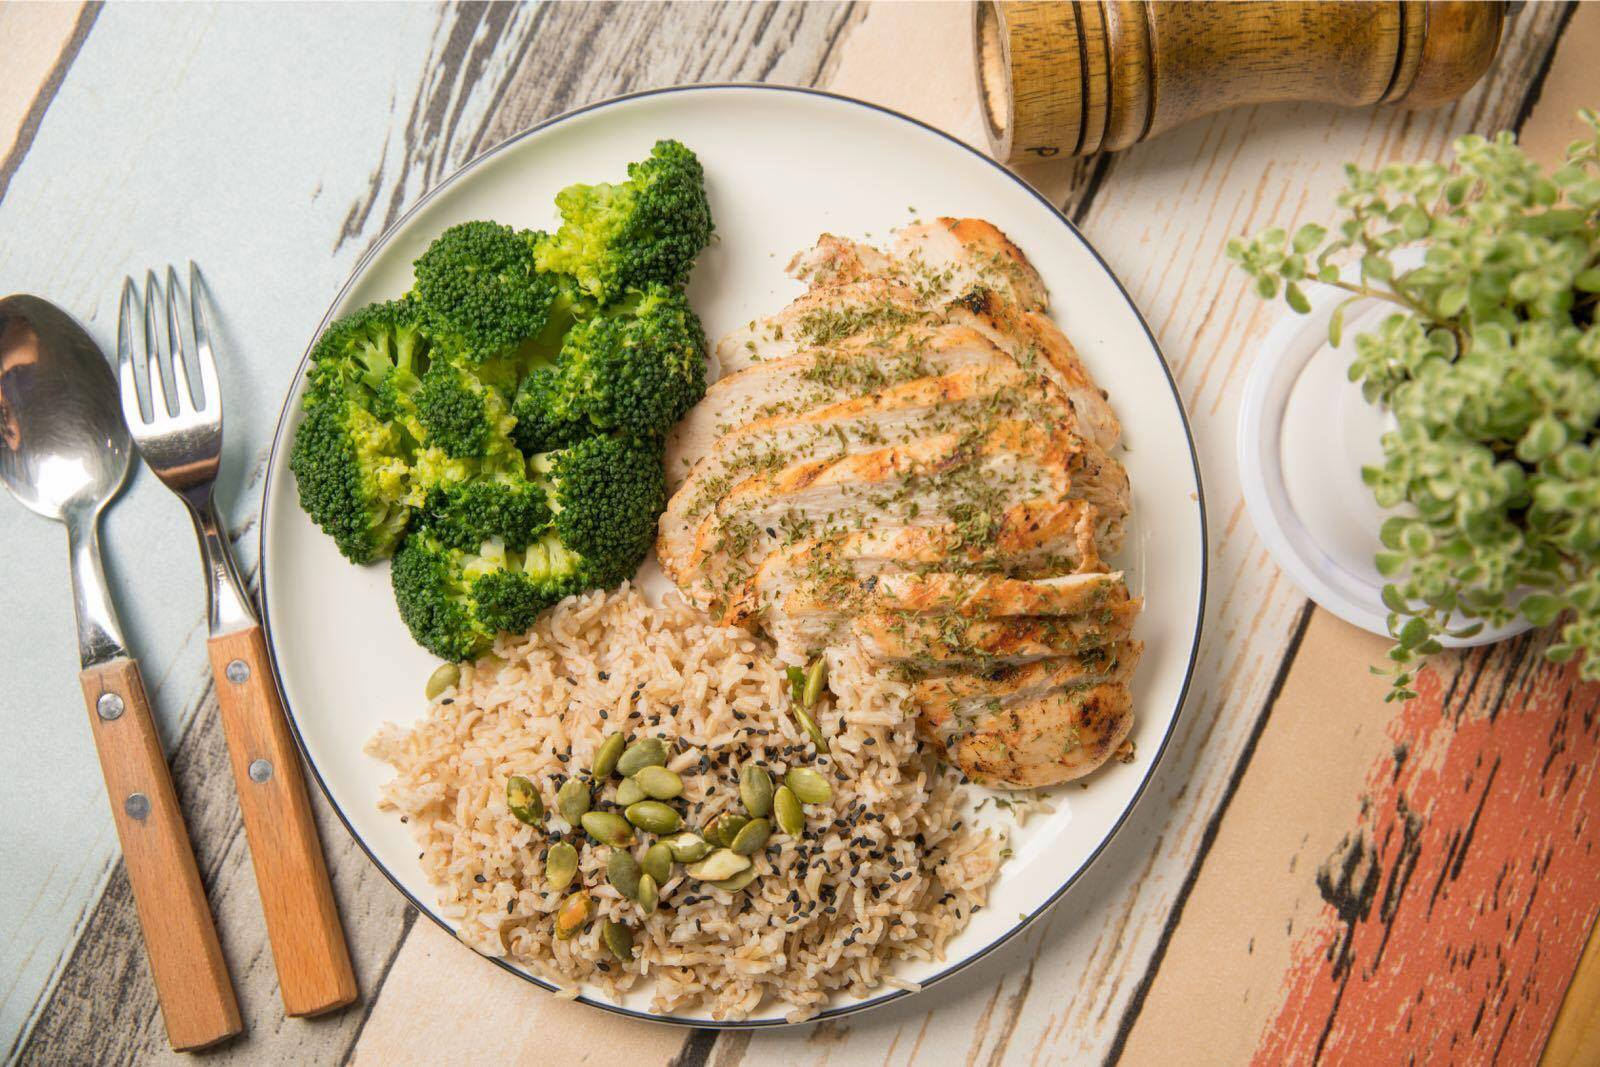 Healthy-Habits-Superfood-Cafe_rice-chicken